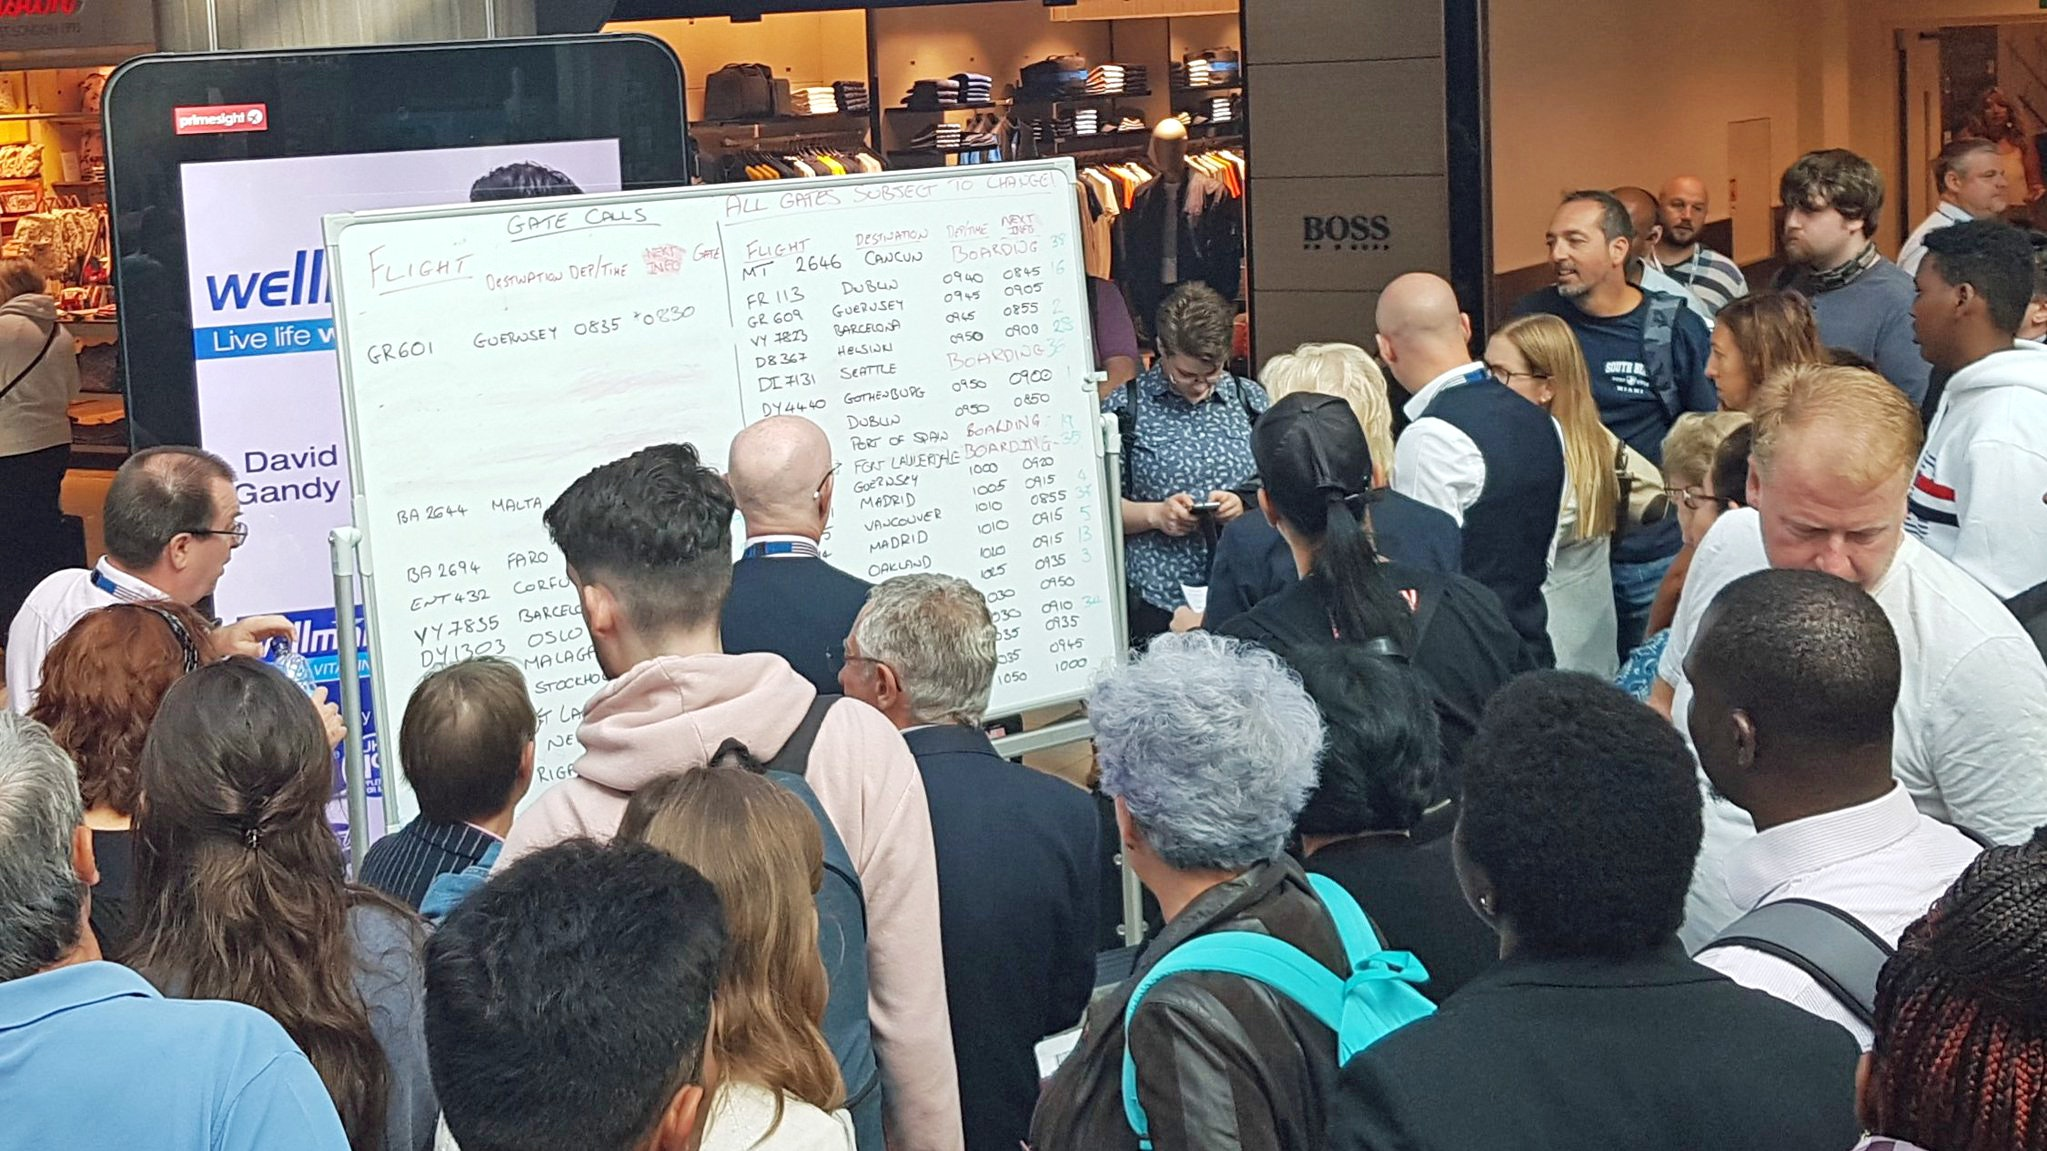 Gatwick resorts to whiteboards for flight information after IT crash